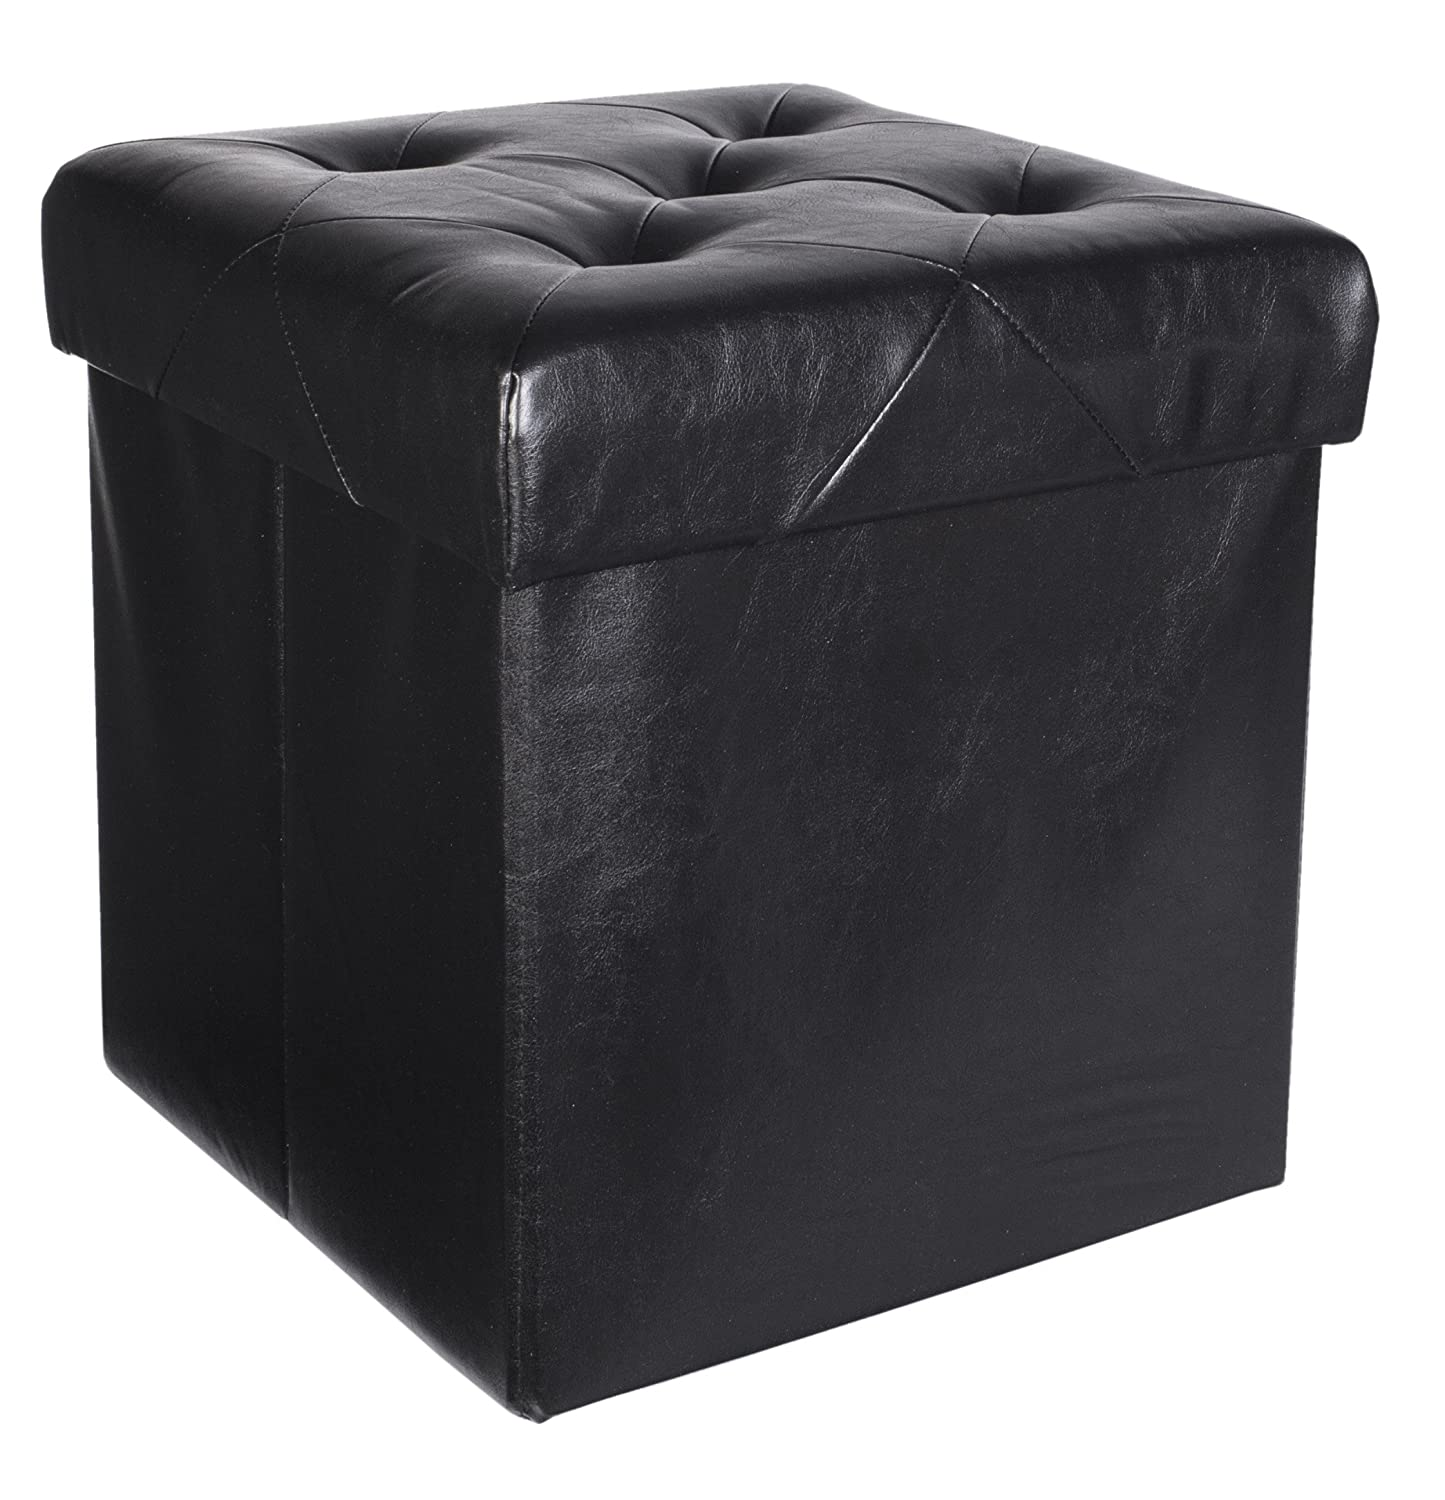 Black Red Co Premium Faux Leather Folding Cube Storage Ottoman with Padded Seat NDLFJG01 15 x 15 Black 15 x 15